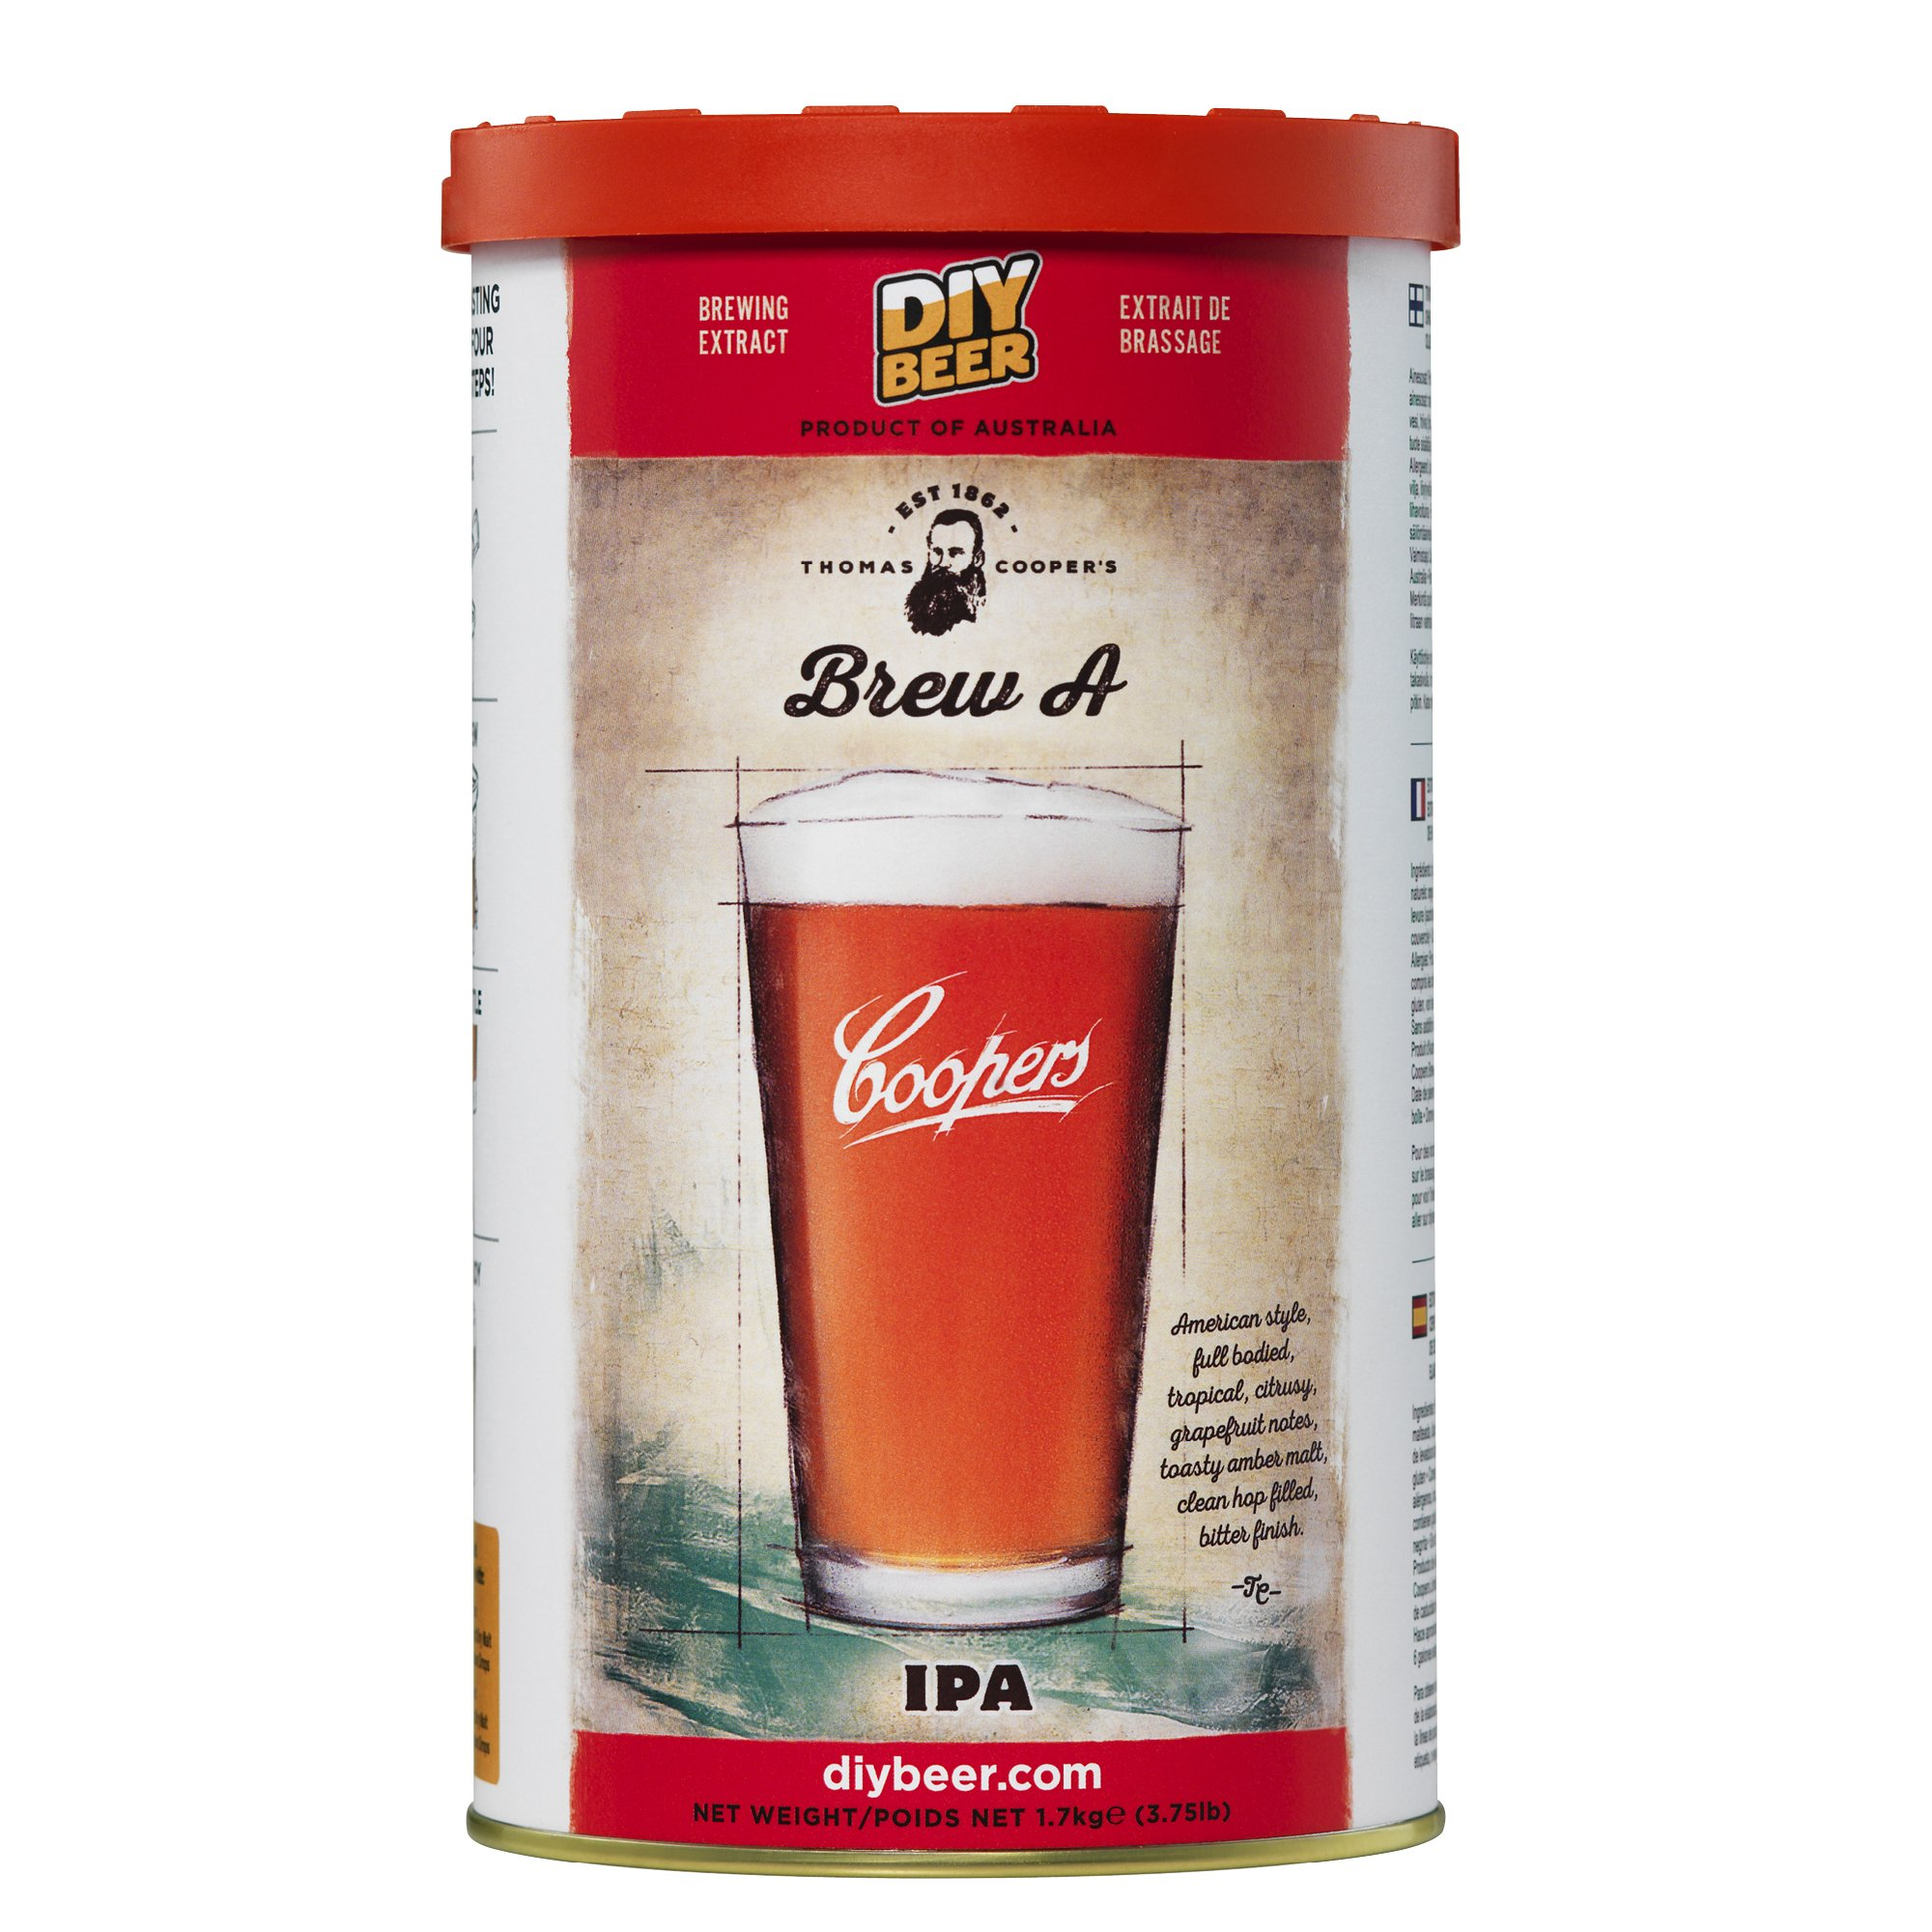 Coopers DIY Beer Thomas Coopers Brew A IPA Homebrewing Craft Beer Brewing Extract